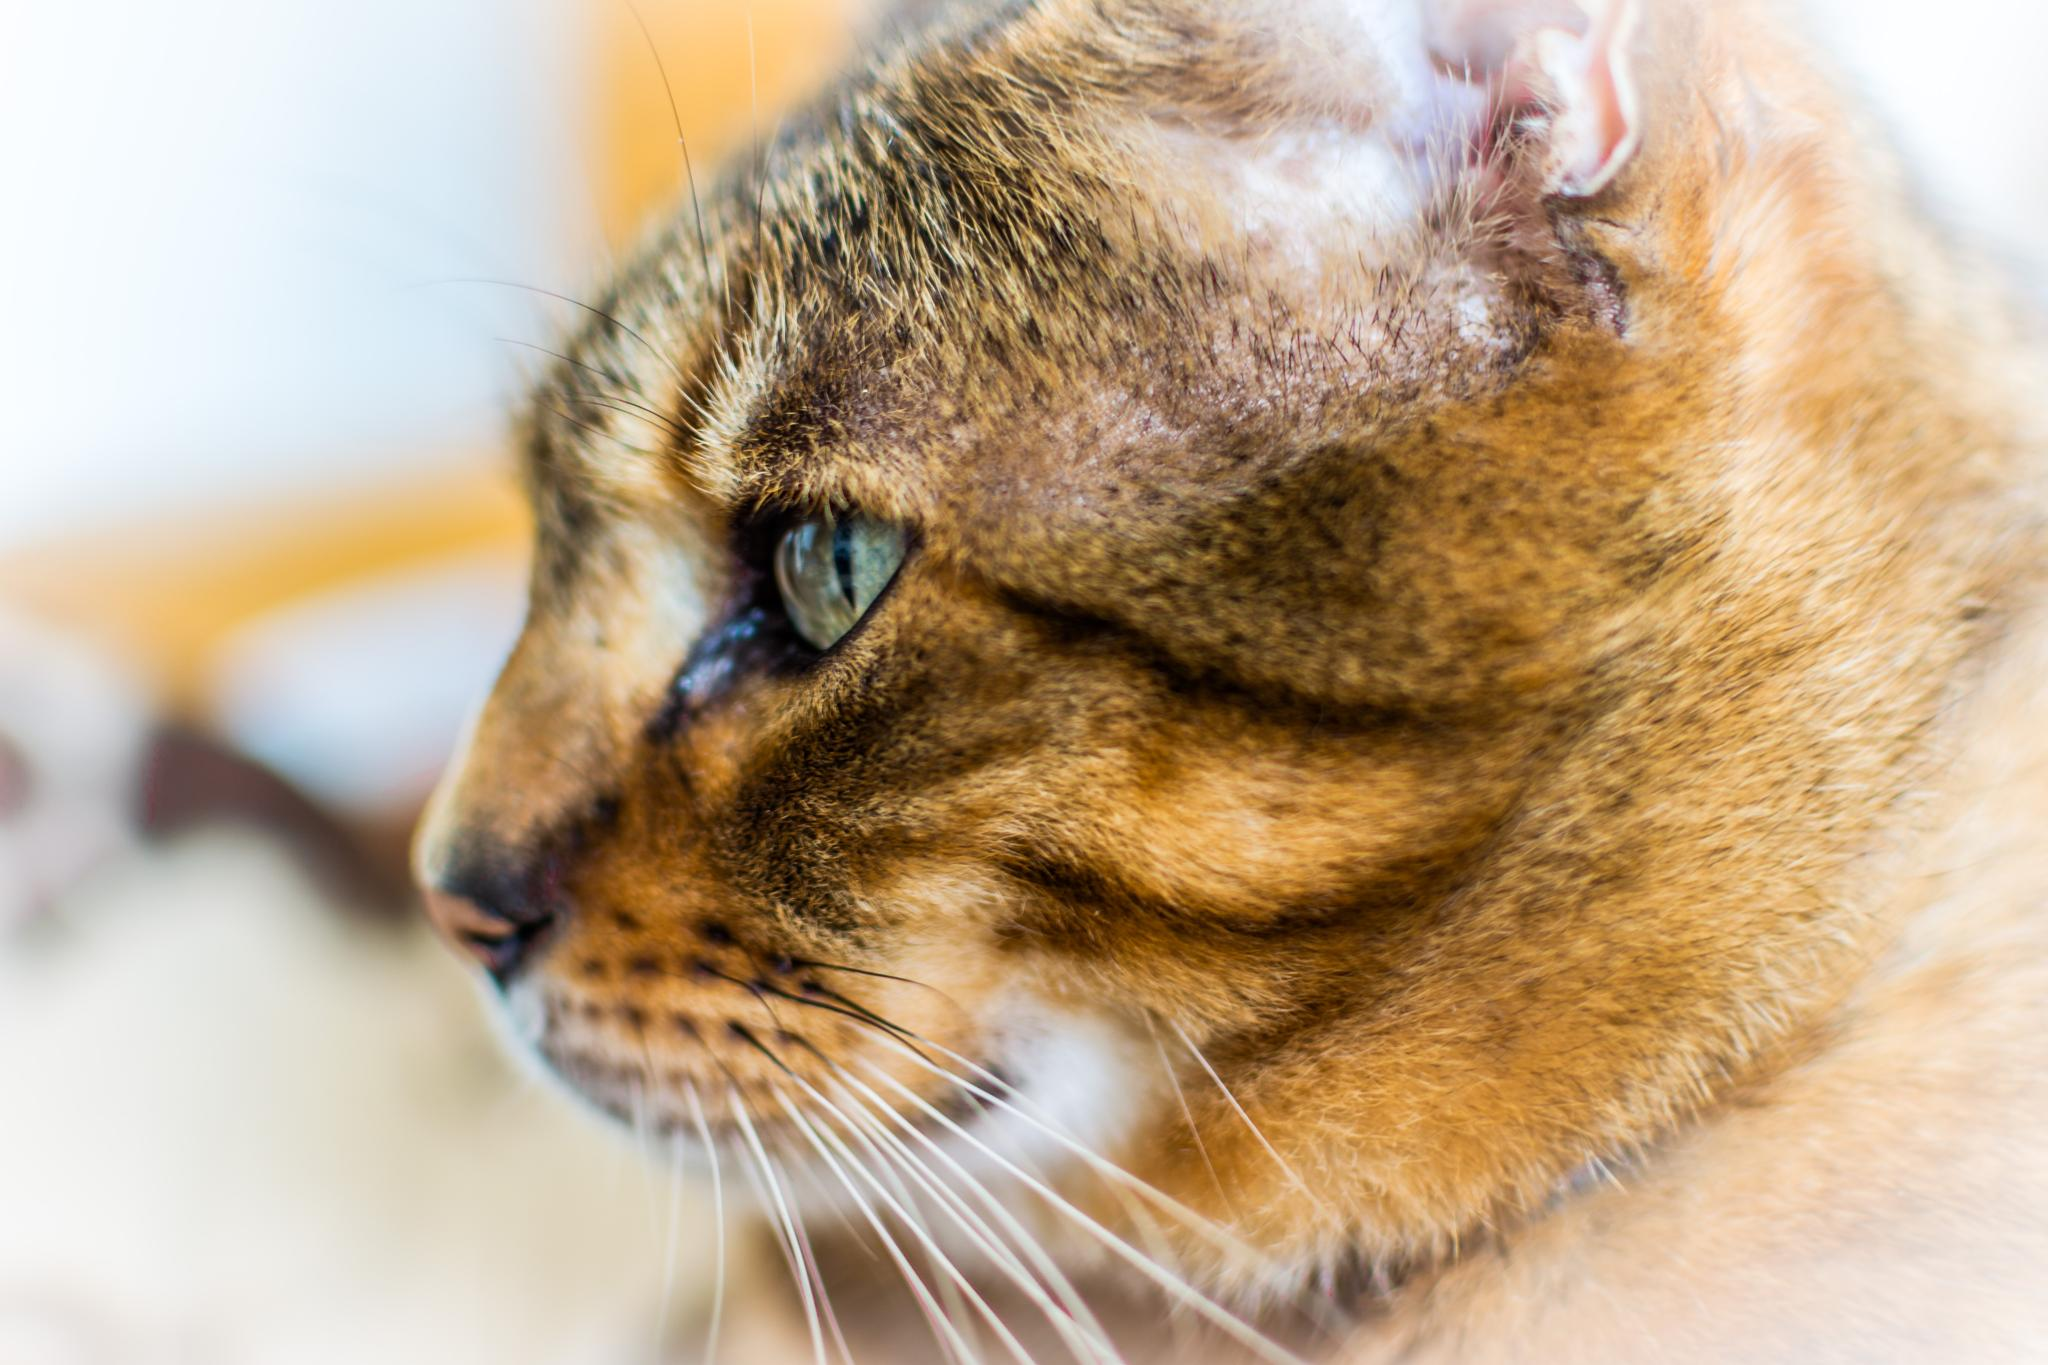 Afghan cat side profile by Andrew Dalgarno